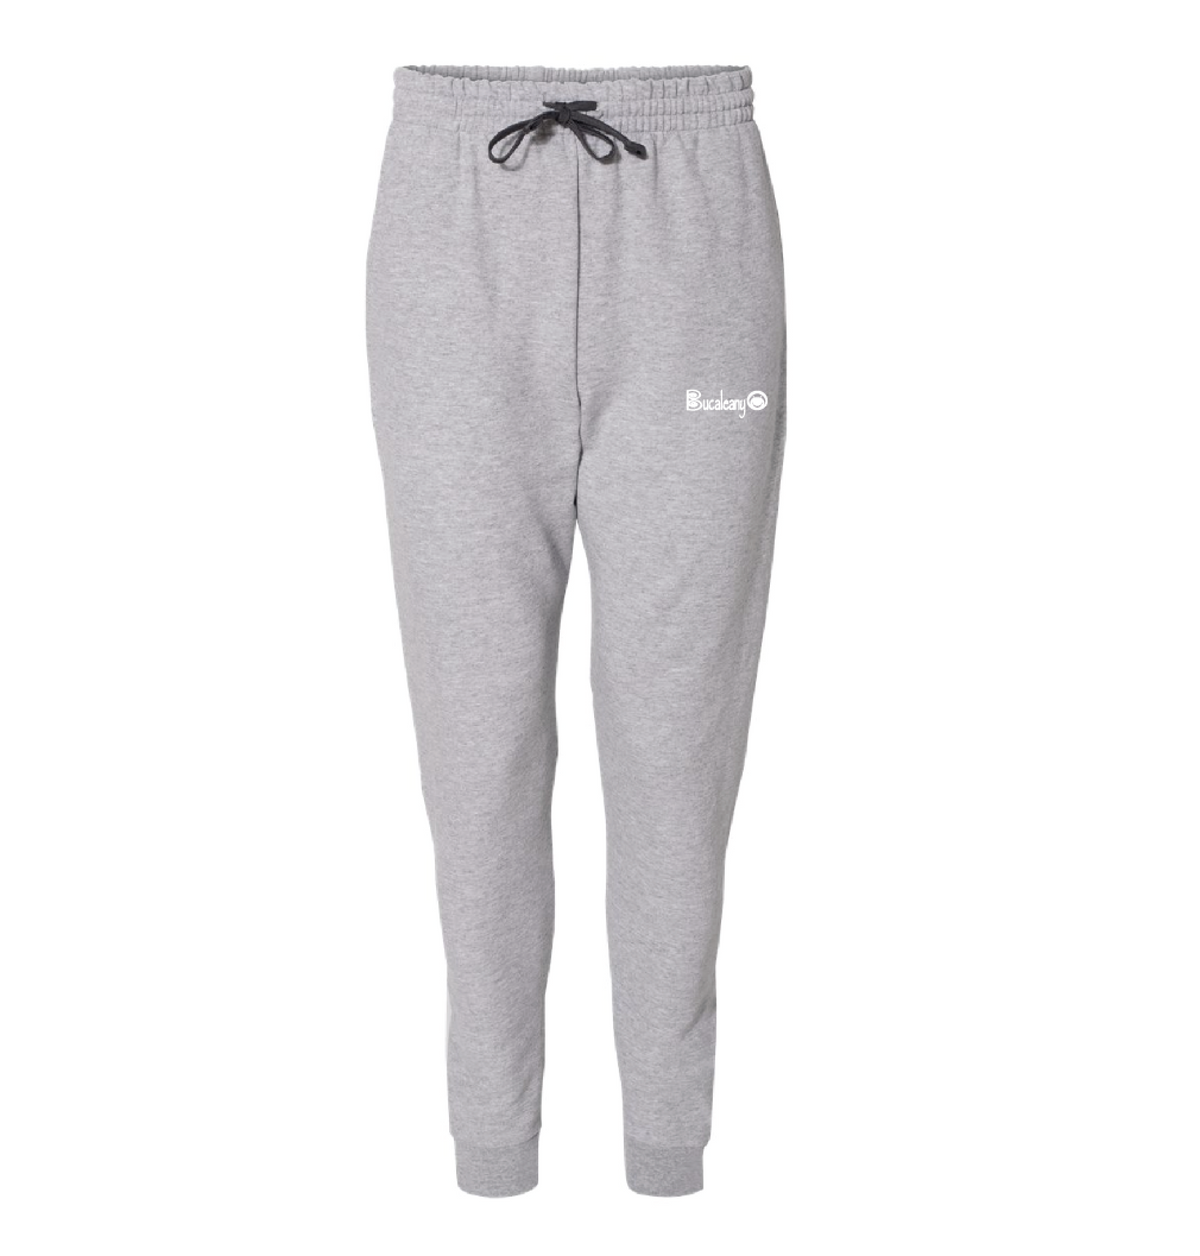 "Bucaleany ""OFFICIAL"" Joggers sweats ."